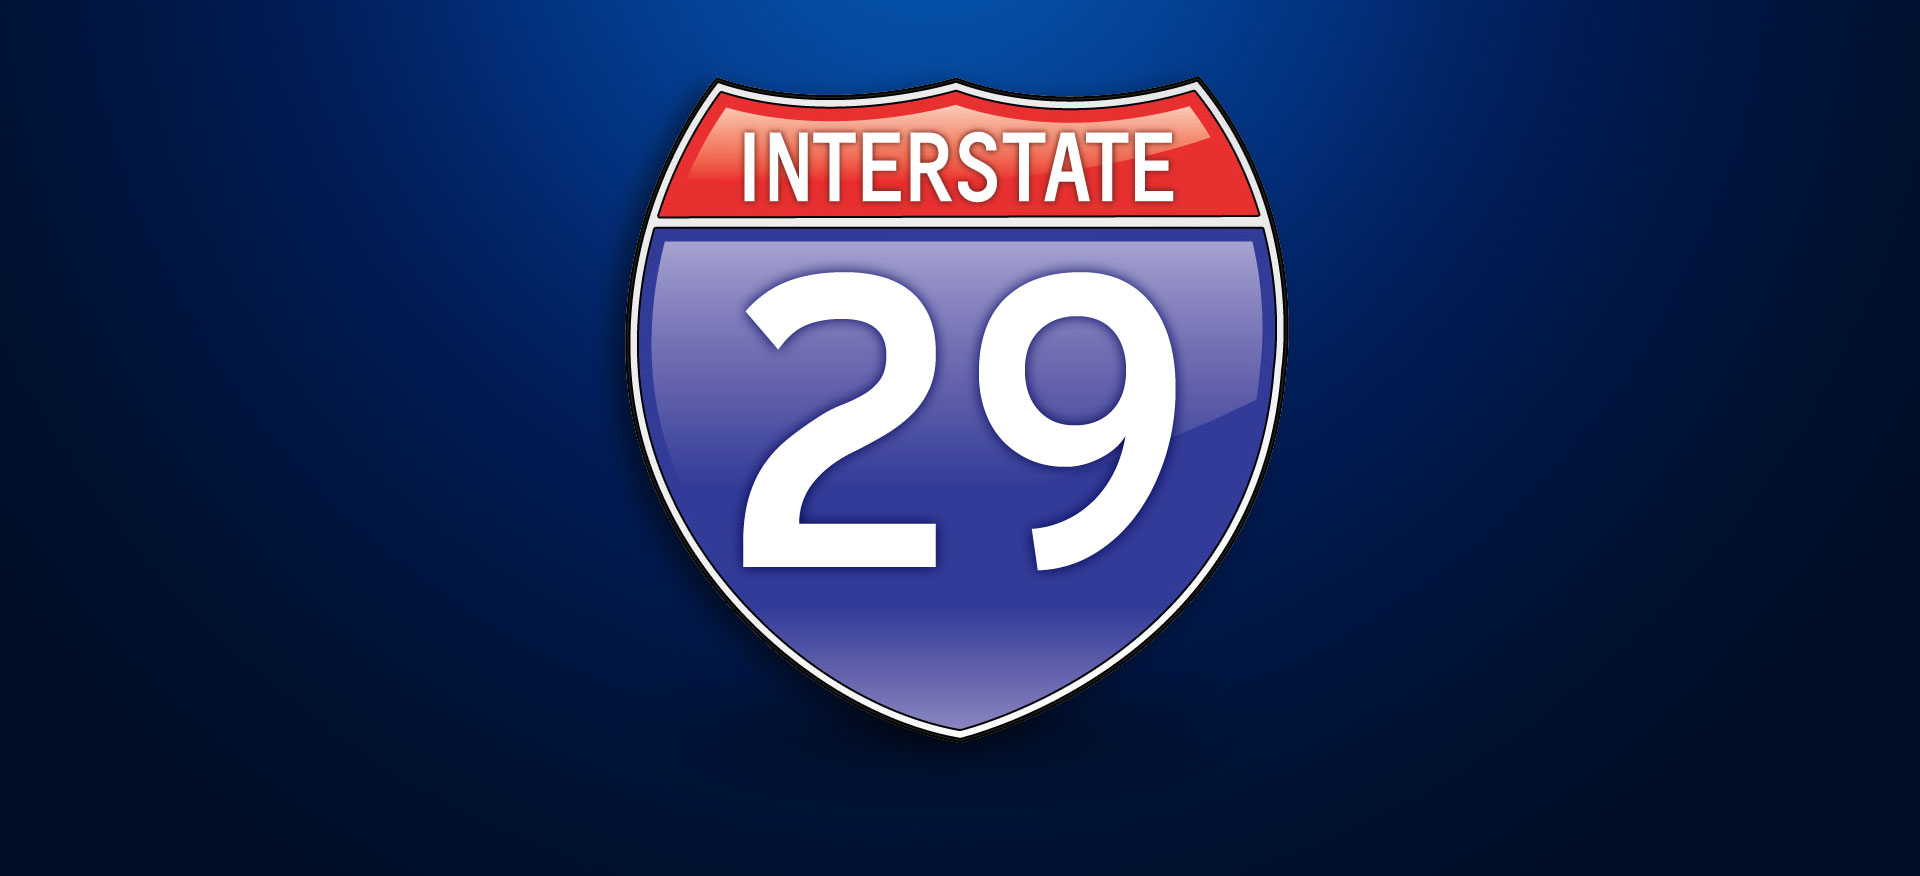 I 29 Closed From North Dakota Border To Brookings